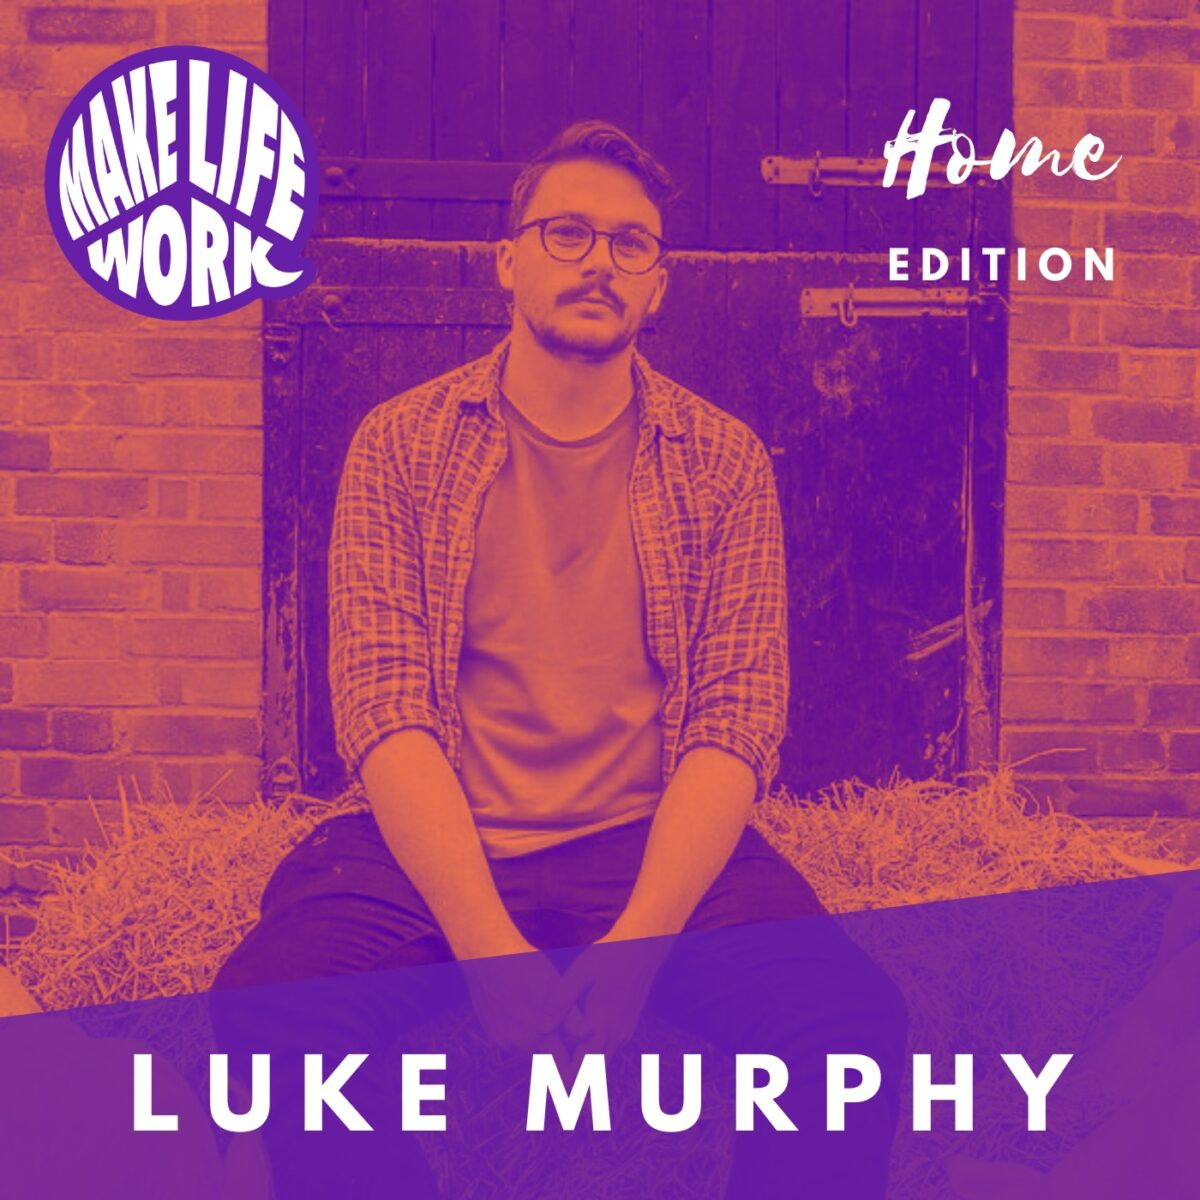 Make Life Work 11 - Luke Murphy